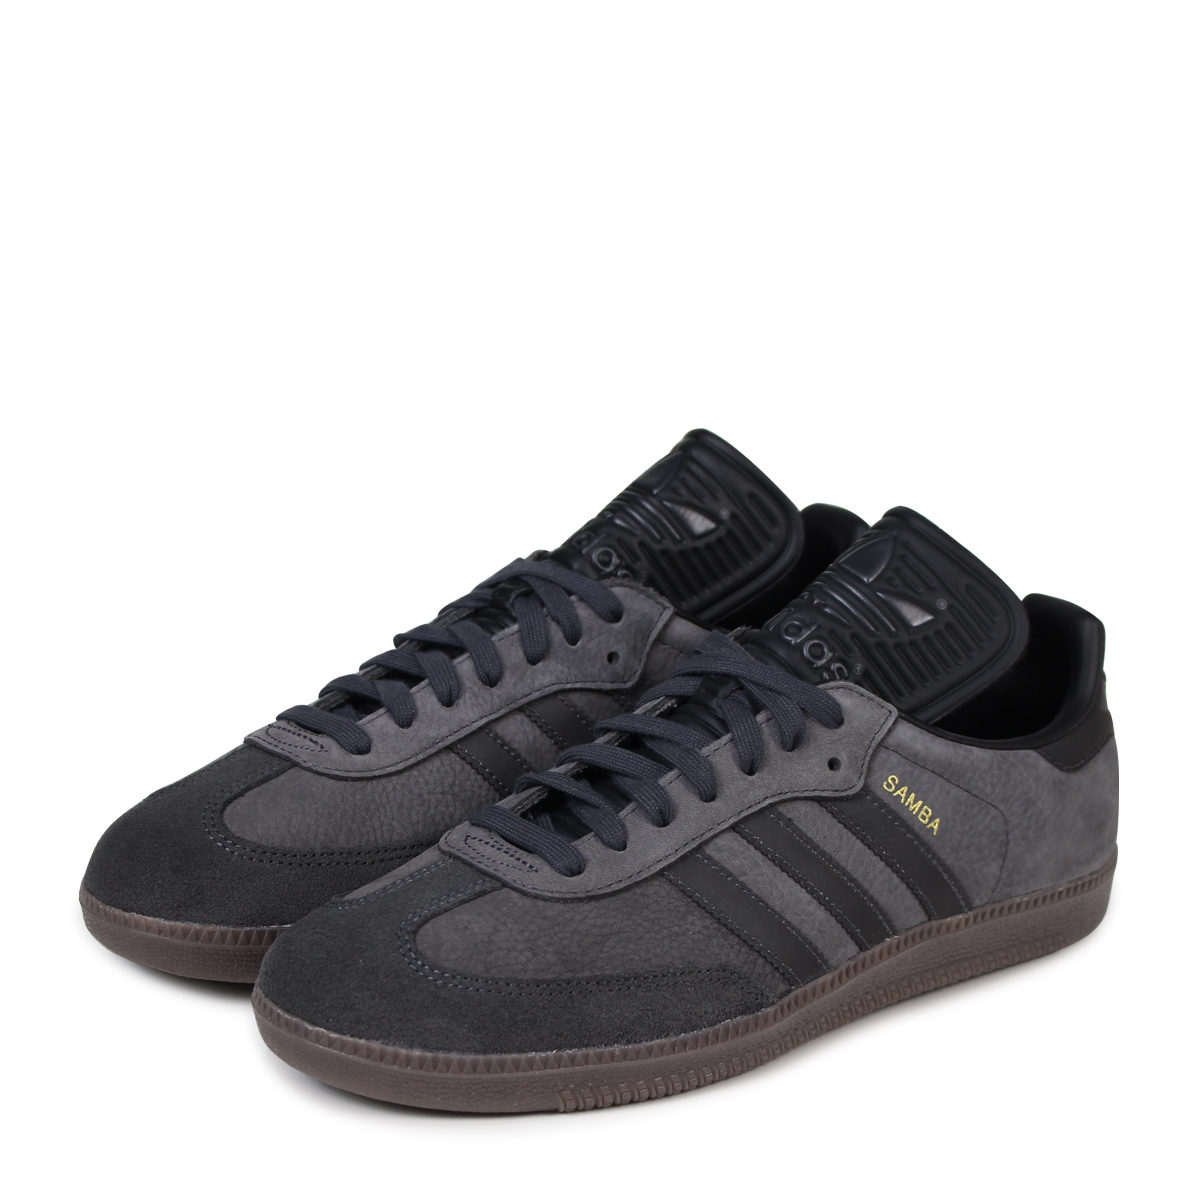 62707f2d7a6 ALLSPORTS  adidas Originals SAMBA CLASSIC OG Adidas samba sneakers men  BZ0227 black originals  load planned Shinnyu load in reservation product  3 20 ...